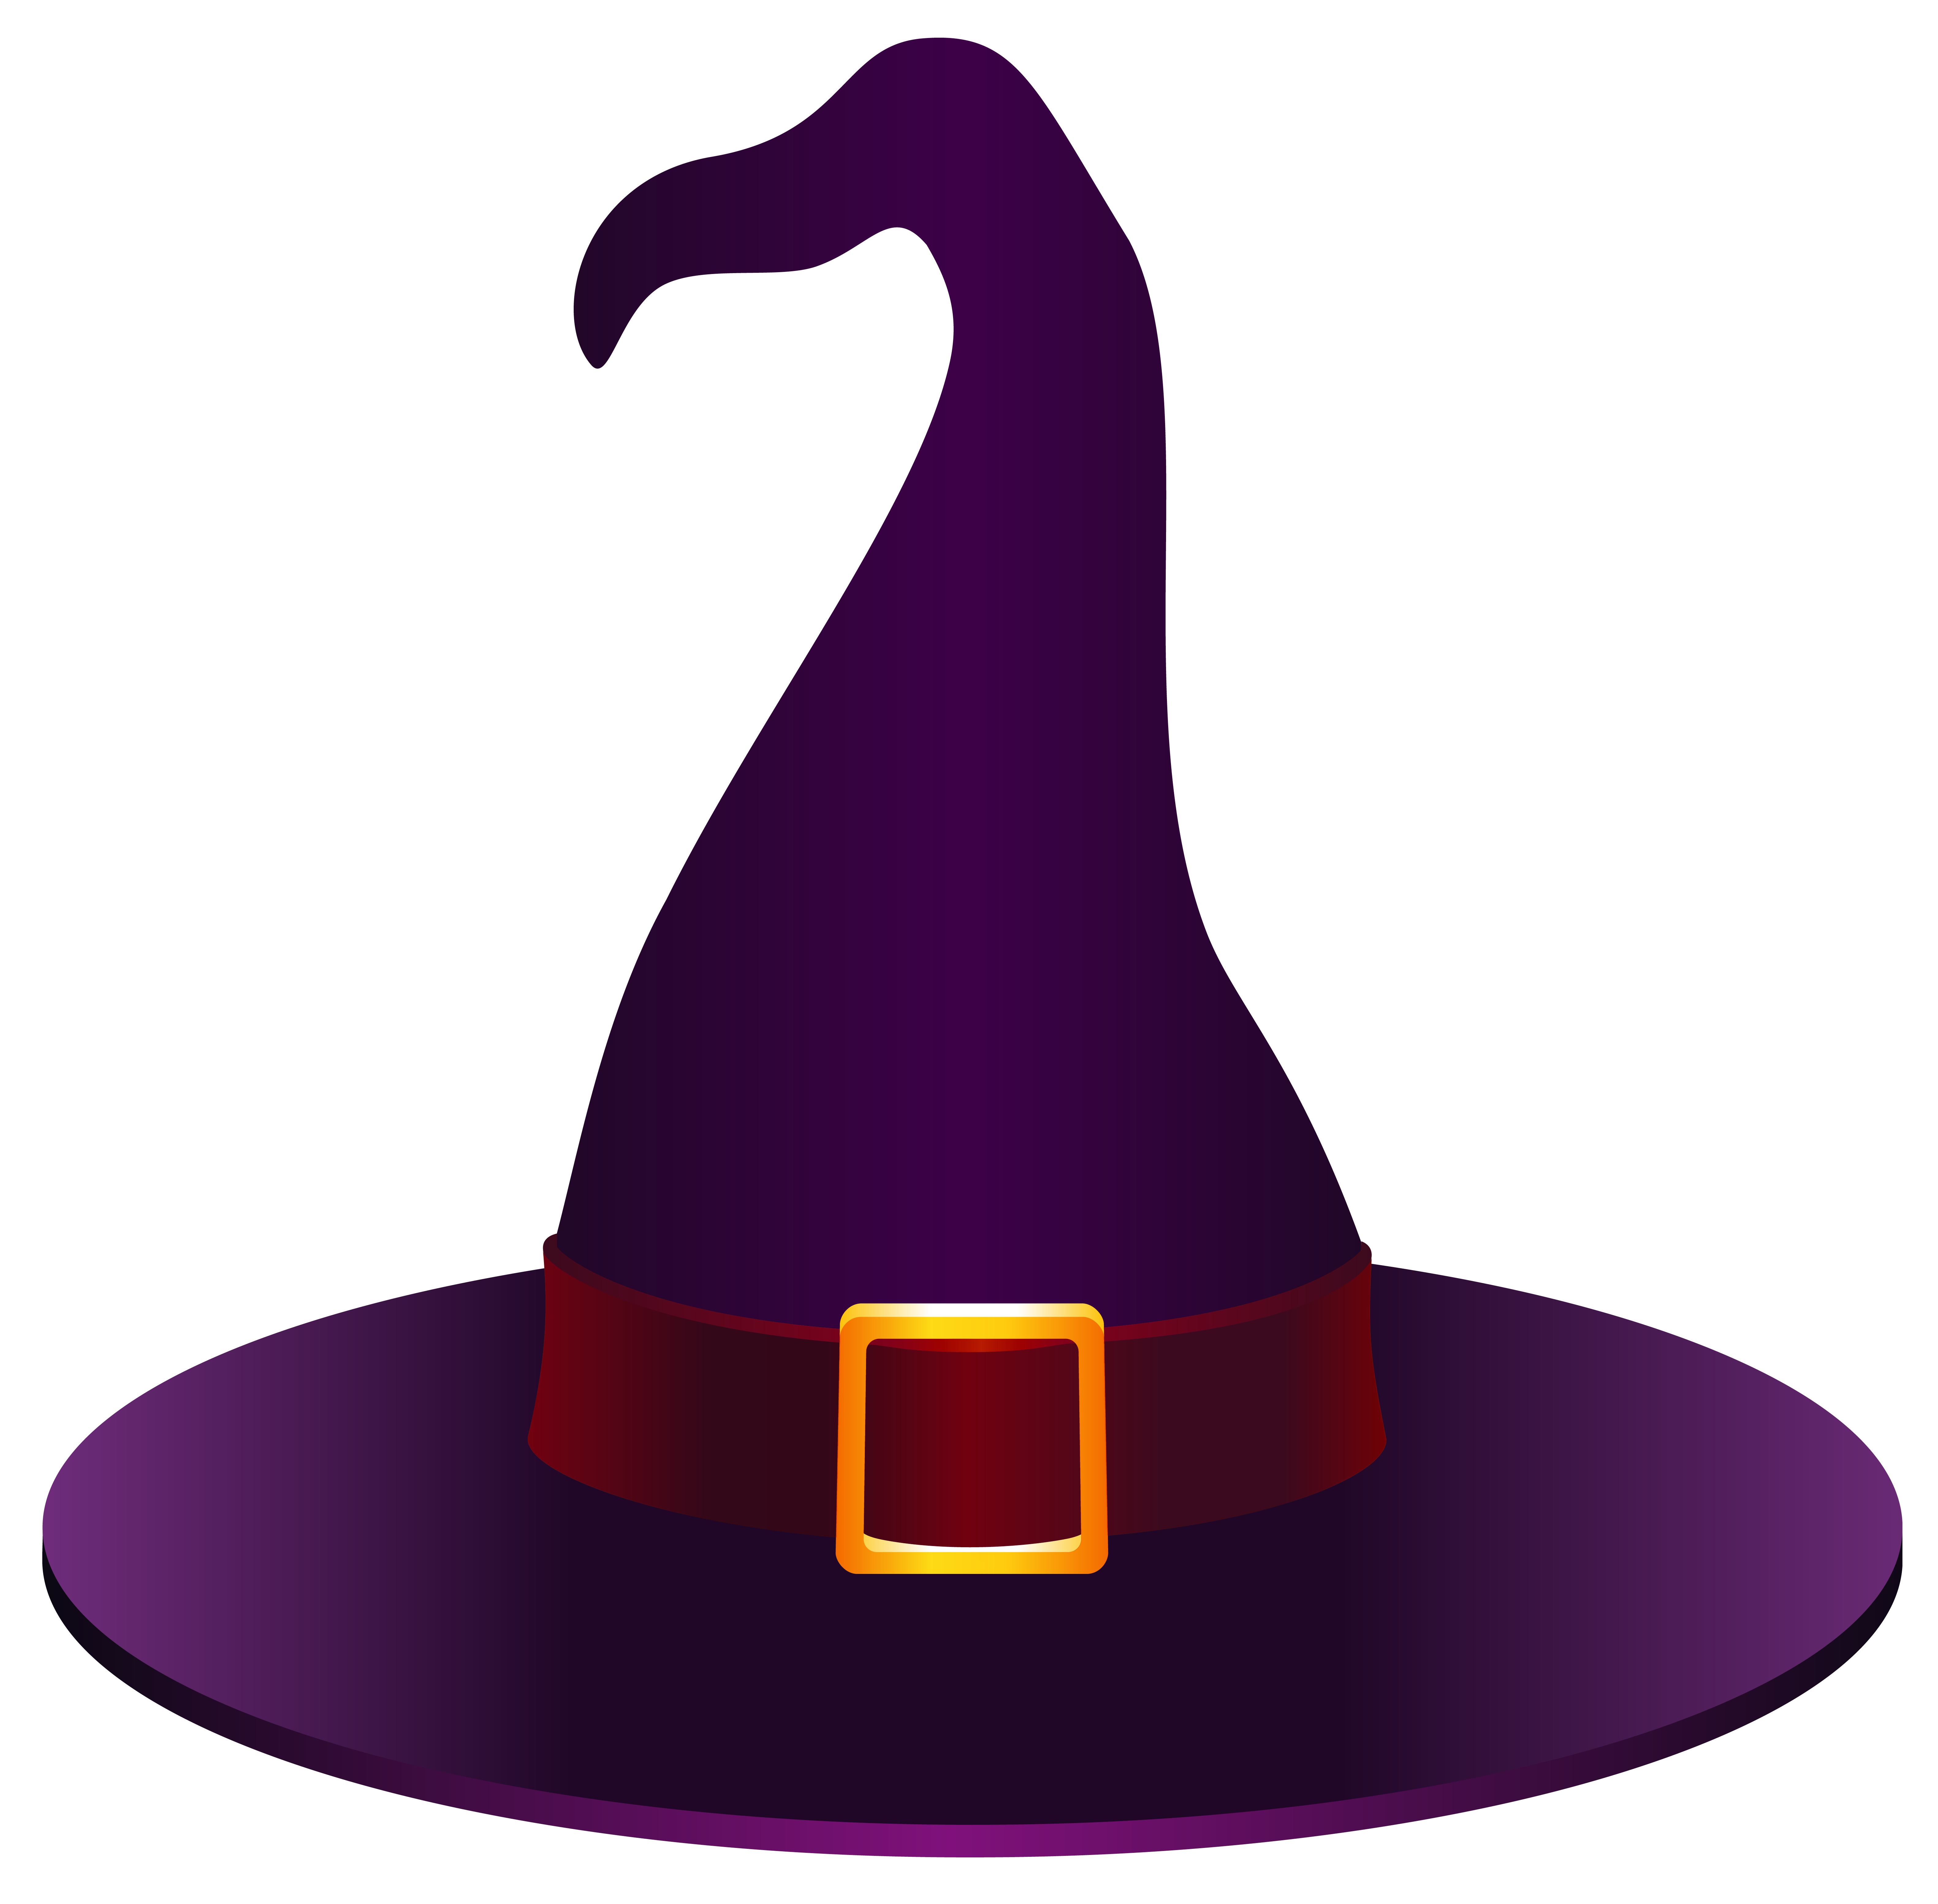 6324x6212 Witch Hat Png Clipart Pictureu200b Gallery Yopriceville